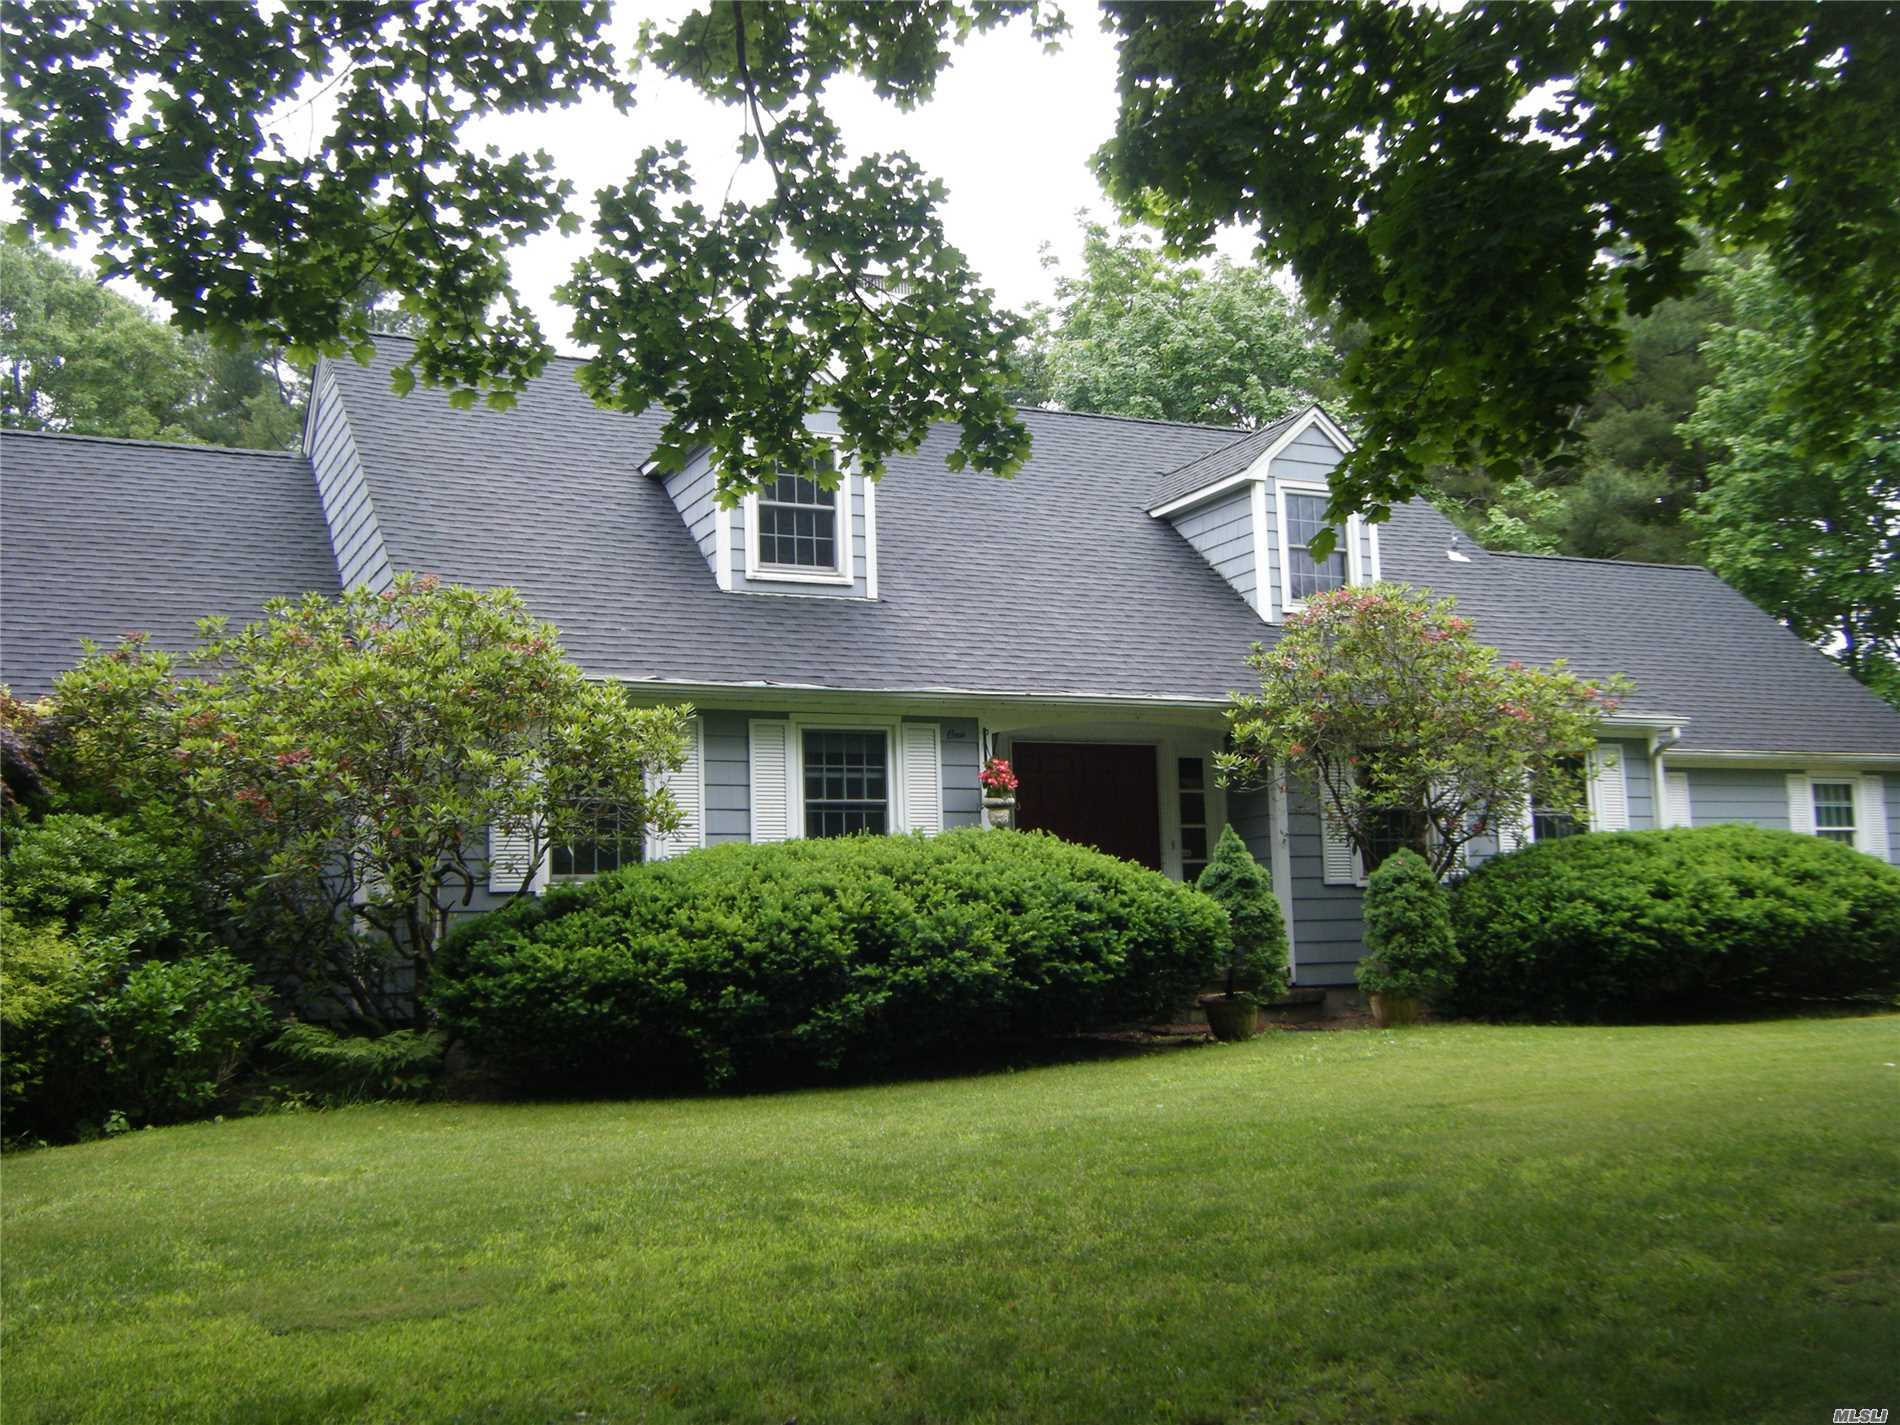 Charm Galore In This Expanded Cape. Wood Fls, Throughout Main House, 2 Fireplaces- Granite, Built In Bbq & Fpl In The Kitchen & Fpl In The Parlor W/French Doors Leading To Covered Porch That Overlooks Private Country Gardens. Updated Baths, One With Wp Tub. Master Could Be Up Or Down. Huge Walk In Attic + Attic Above Oversized 2+ Car Garage. Room For Mom Or Office W/Entrance. Natural Gas Heat & Hot Water. Beautiful Neighborhood!